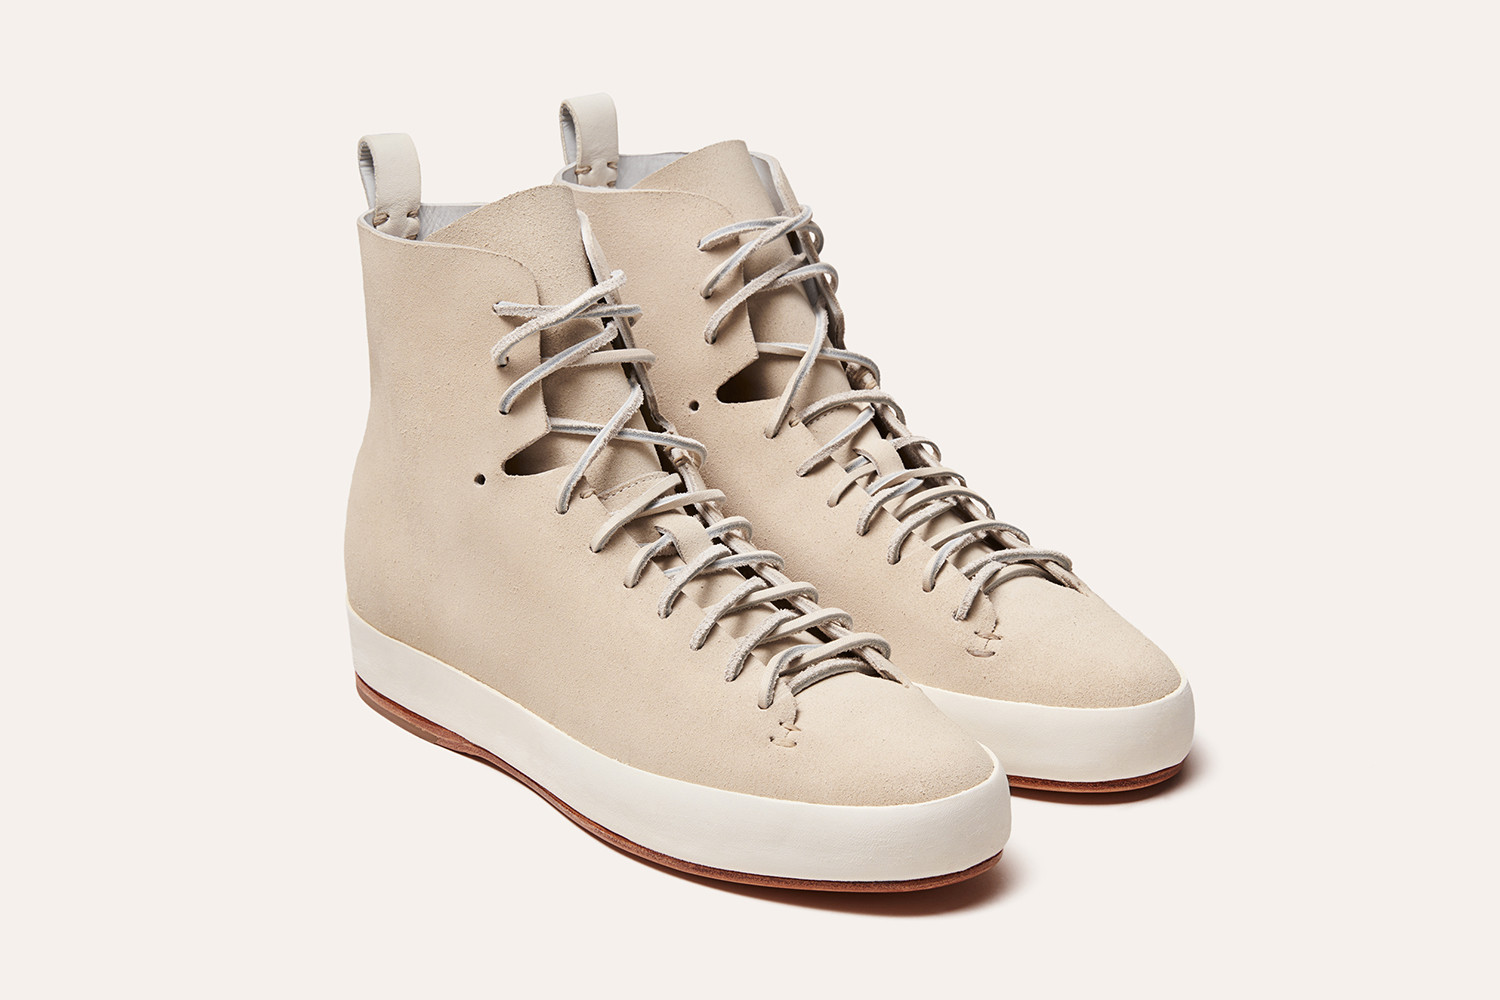 FEIT Debuts the Hand Sewn Super High Boot